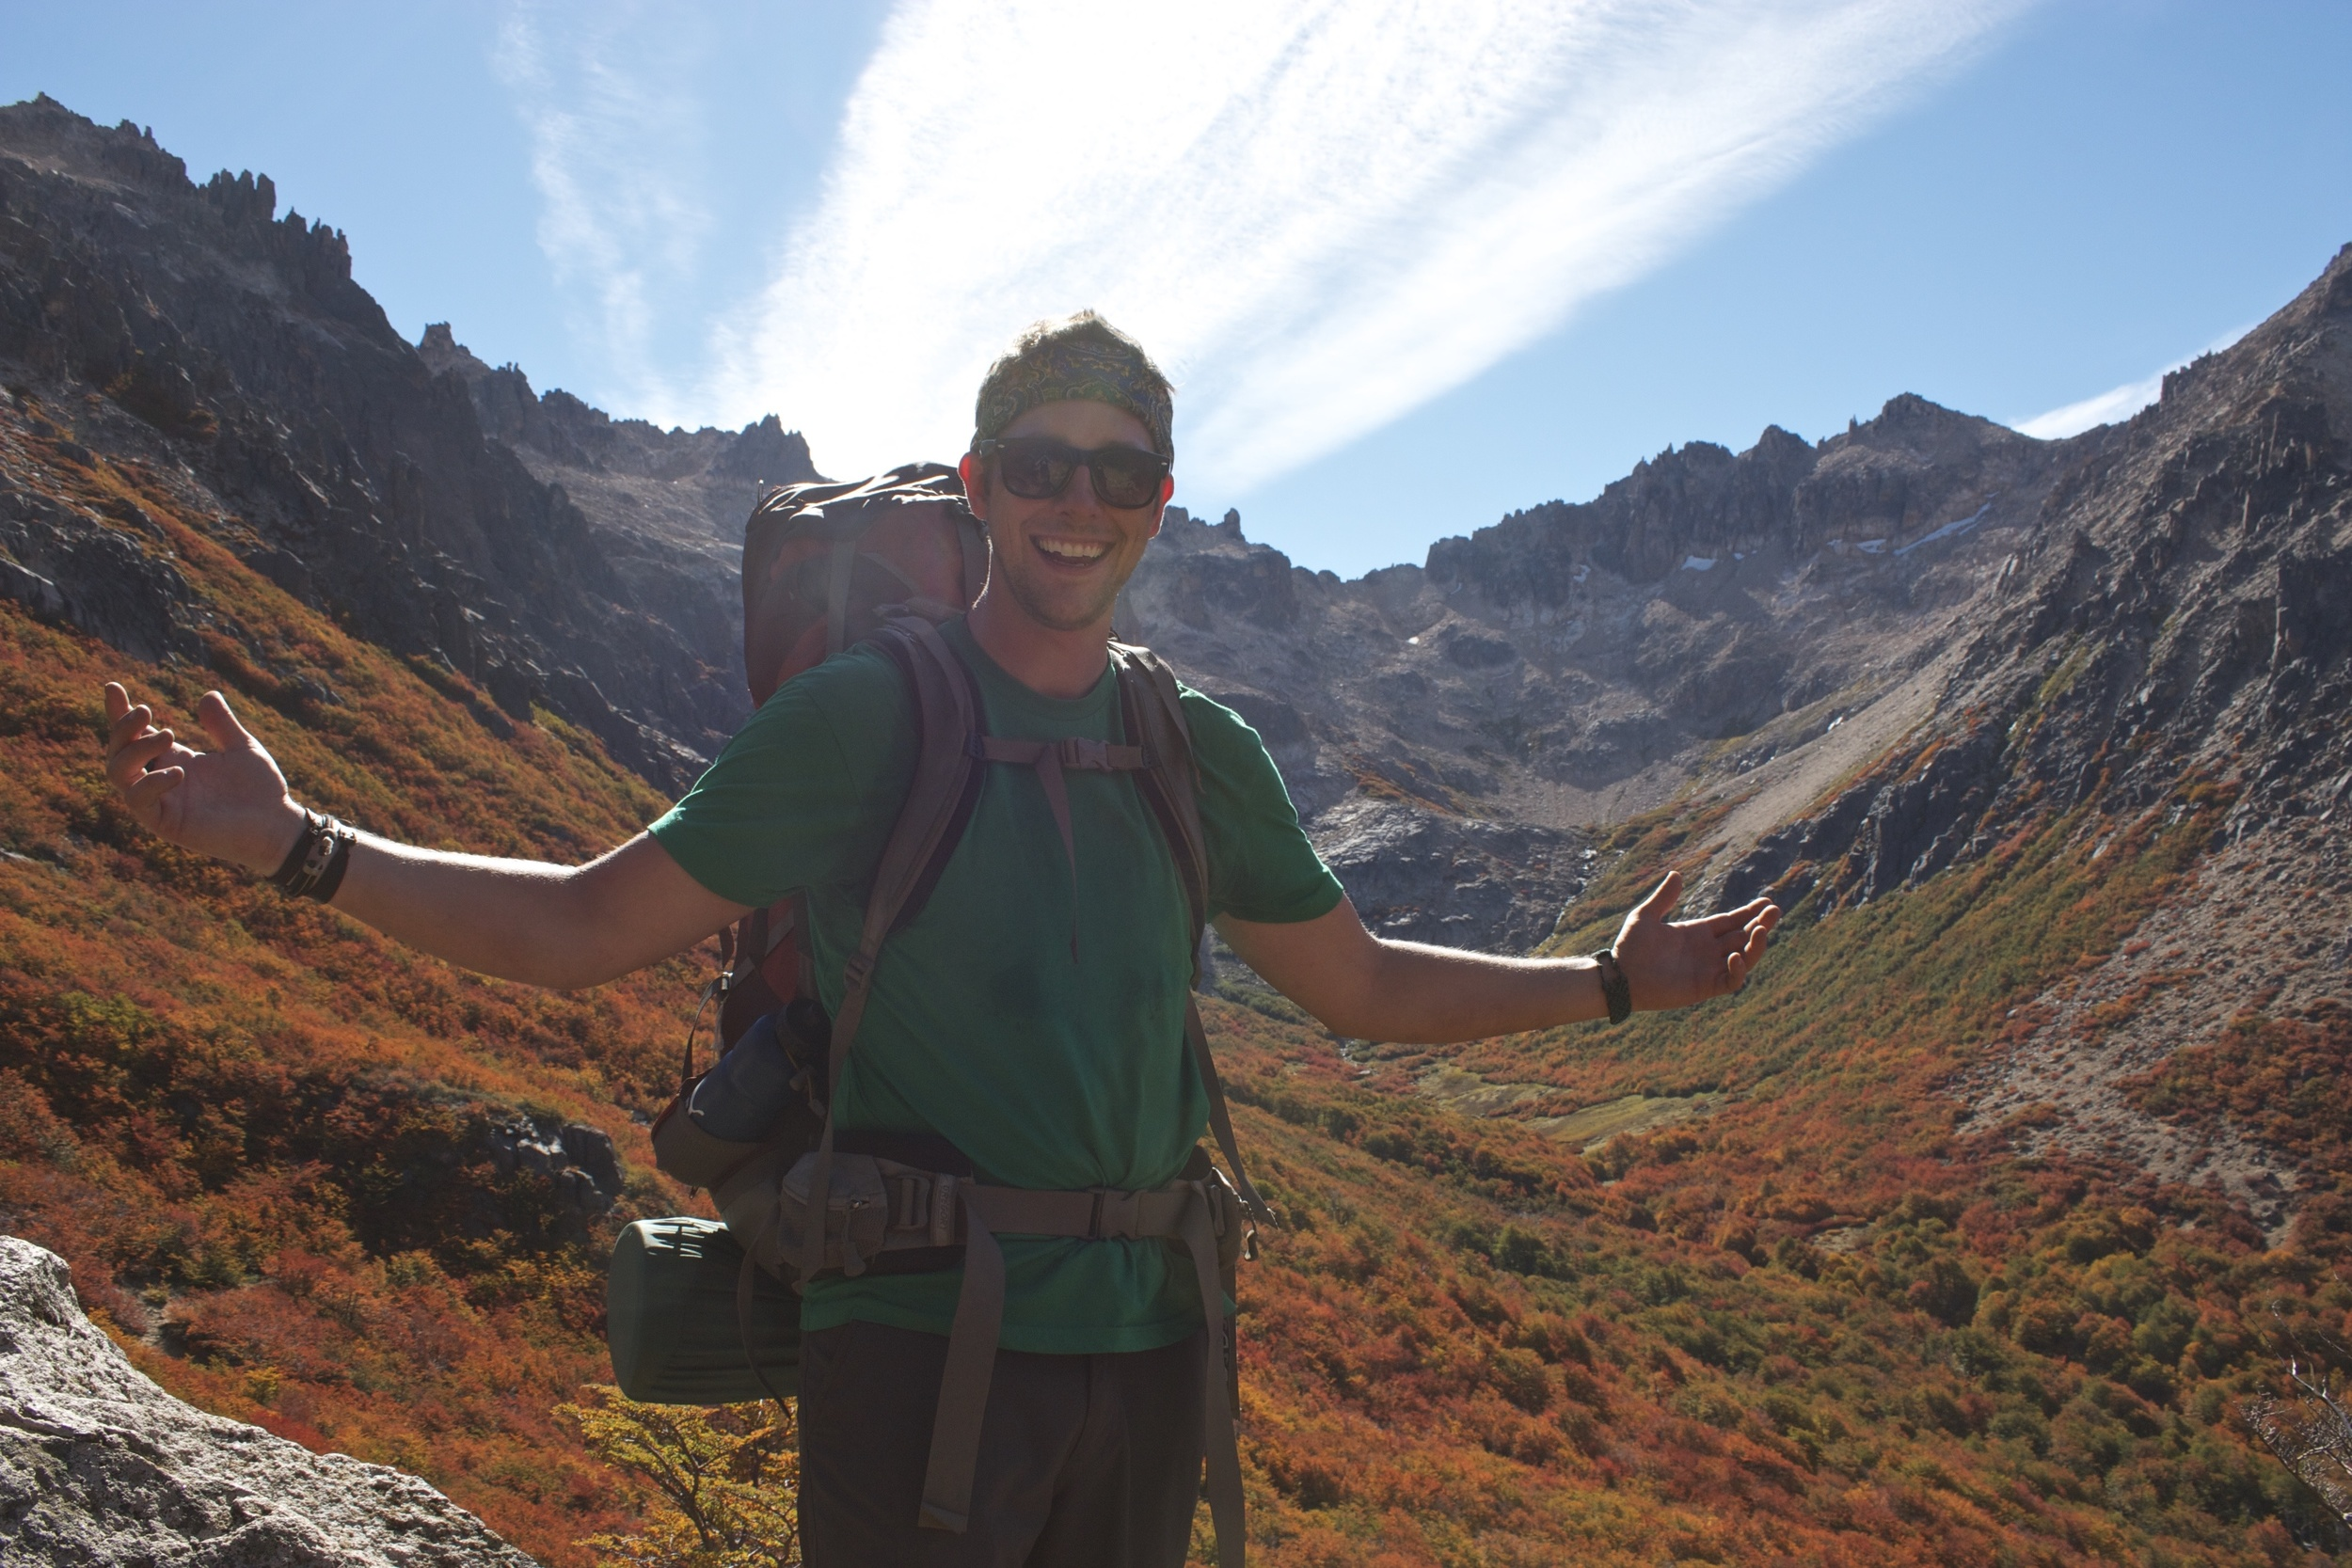 Backpacking near Bariloche, Argentina in gorgeous fall weather